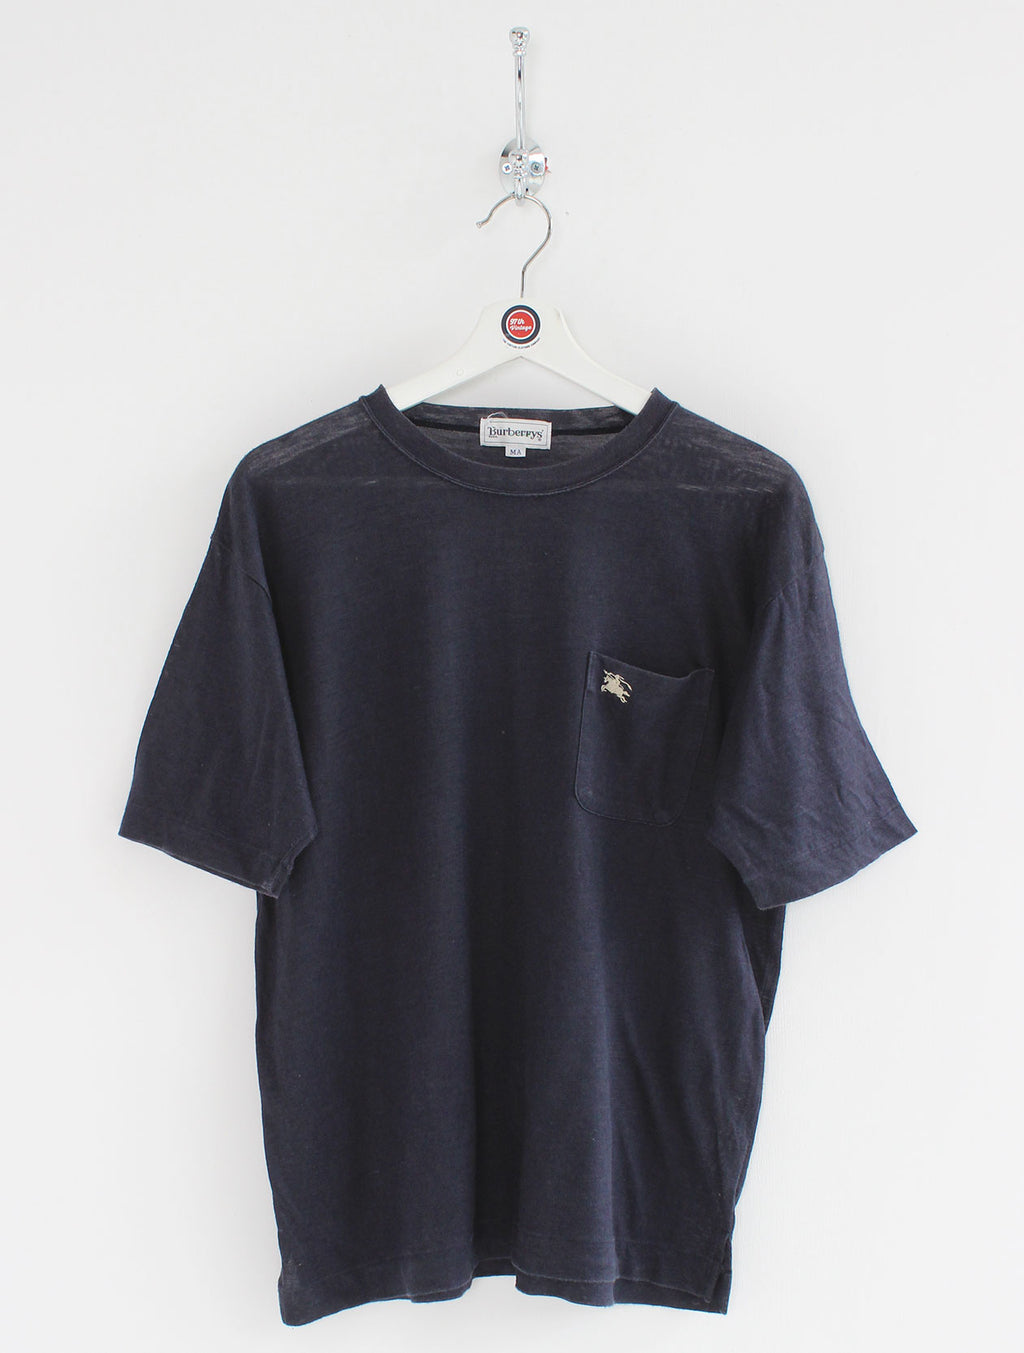 Burberry T-Shirt (M)